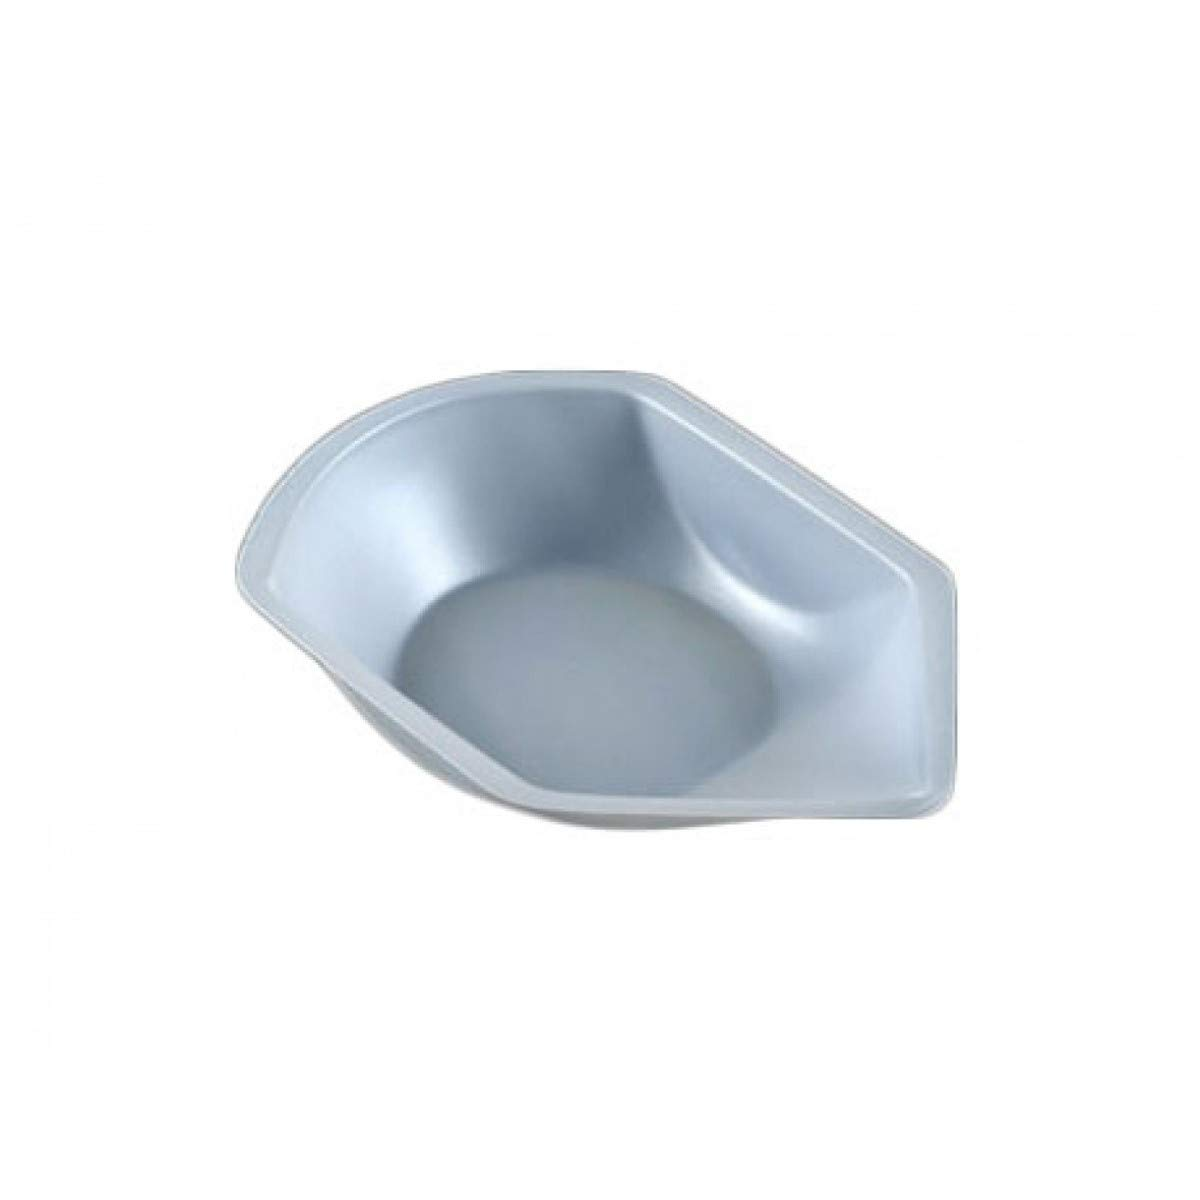 Polystyrene Natural Fisher Scientific 08-732-117 Fisherbrand Antistatic Weighing Dish 25.4 mm Height 133 mm Width 88.9 mm Length Pack of 250